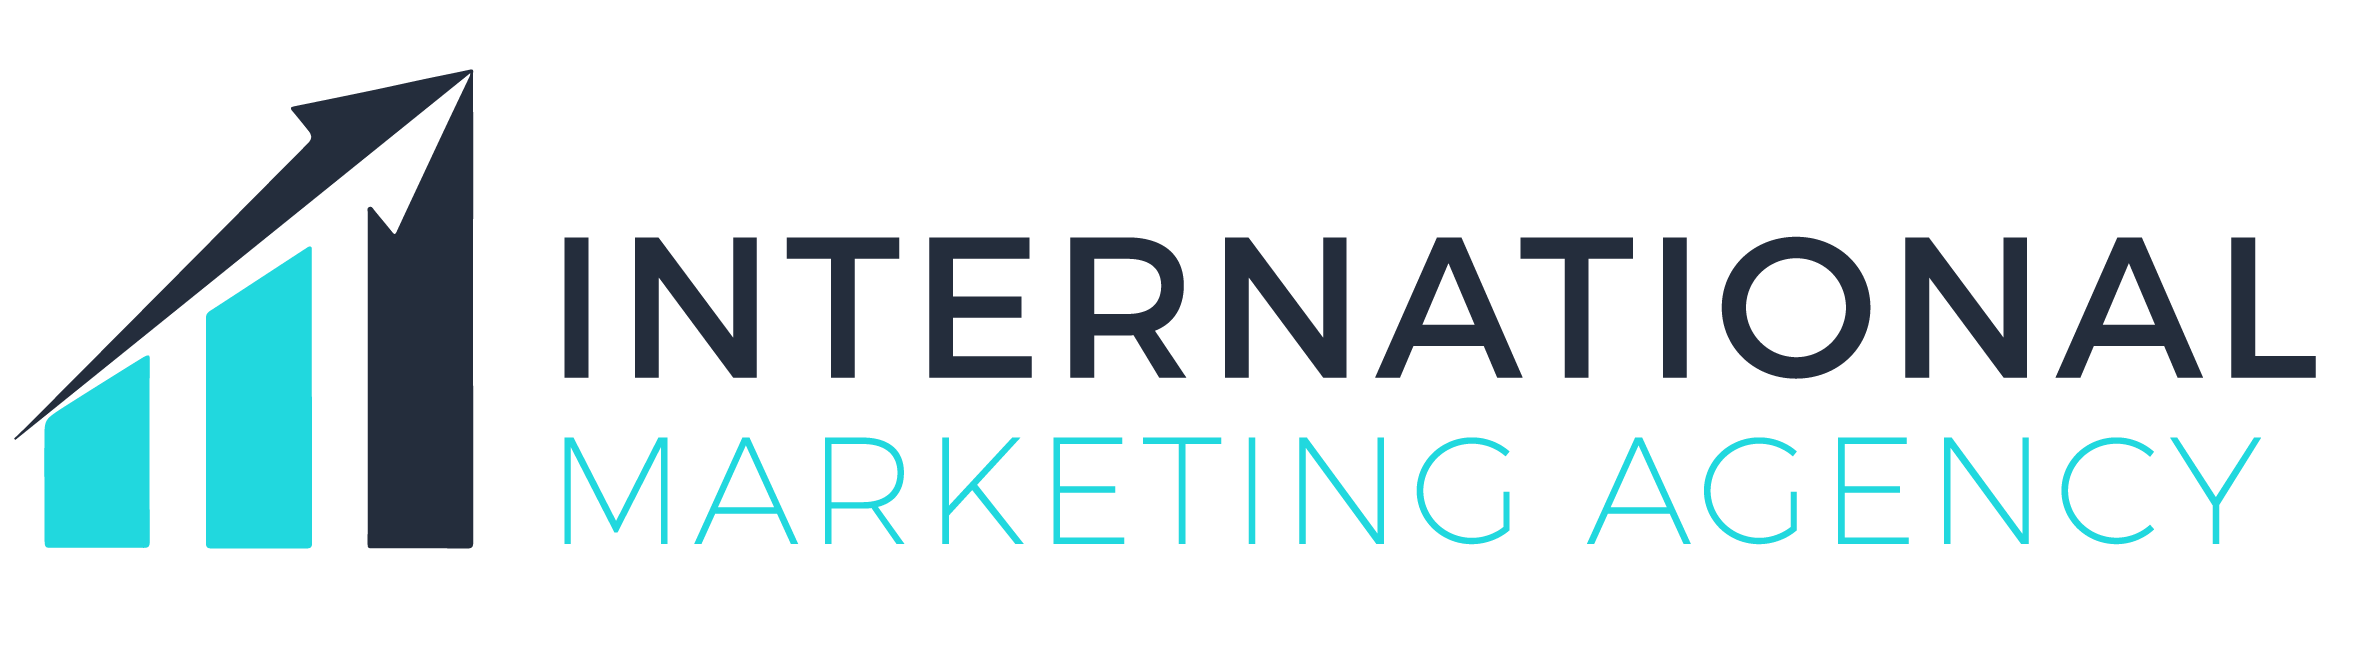 International Marketing Agency